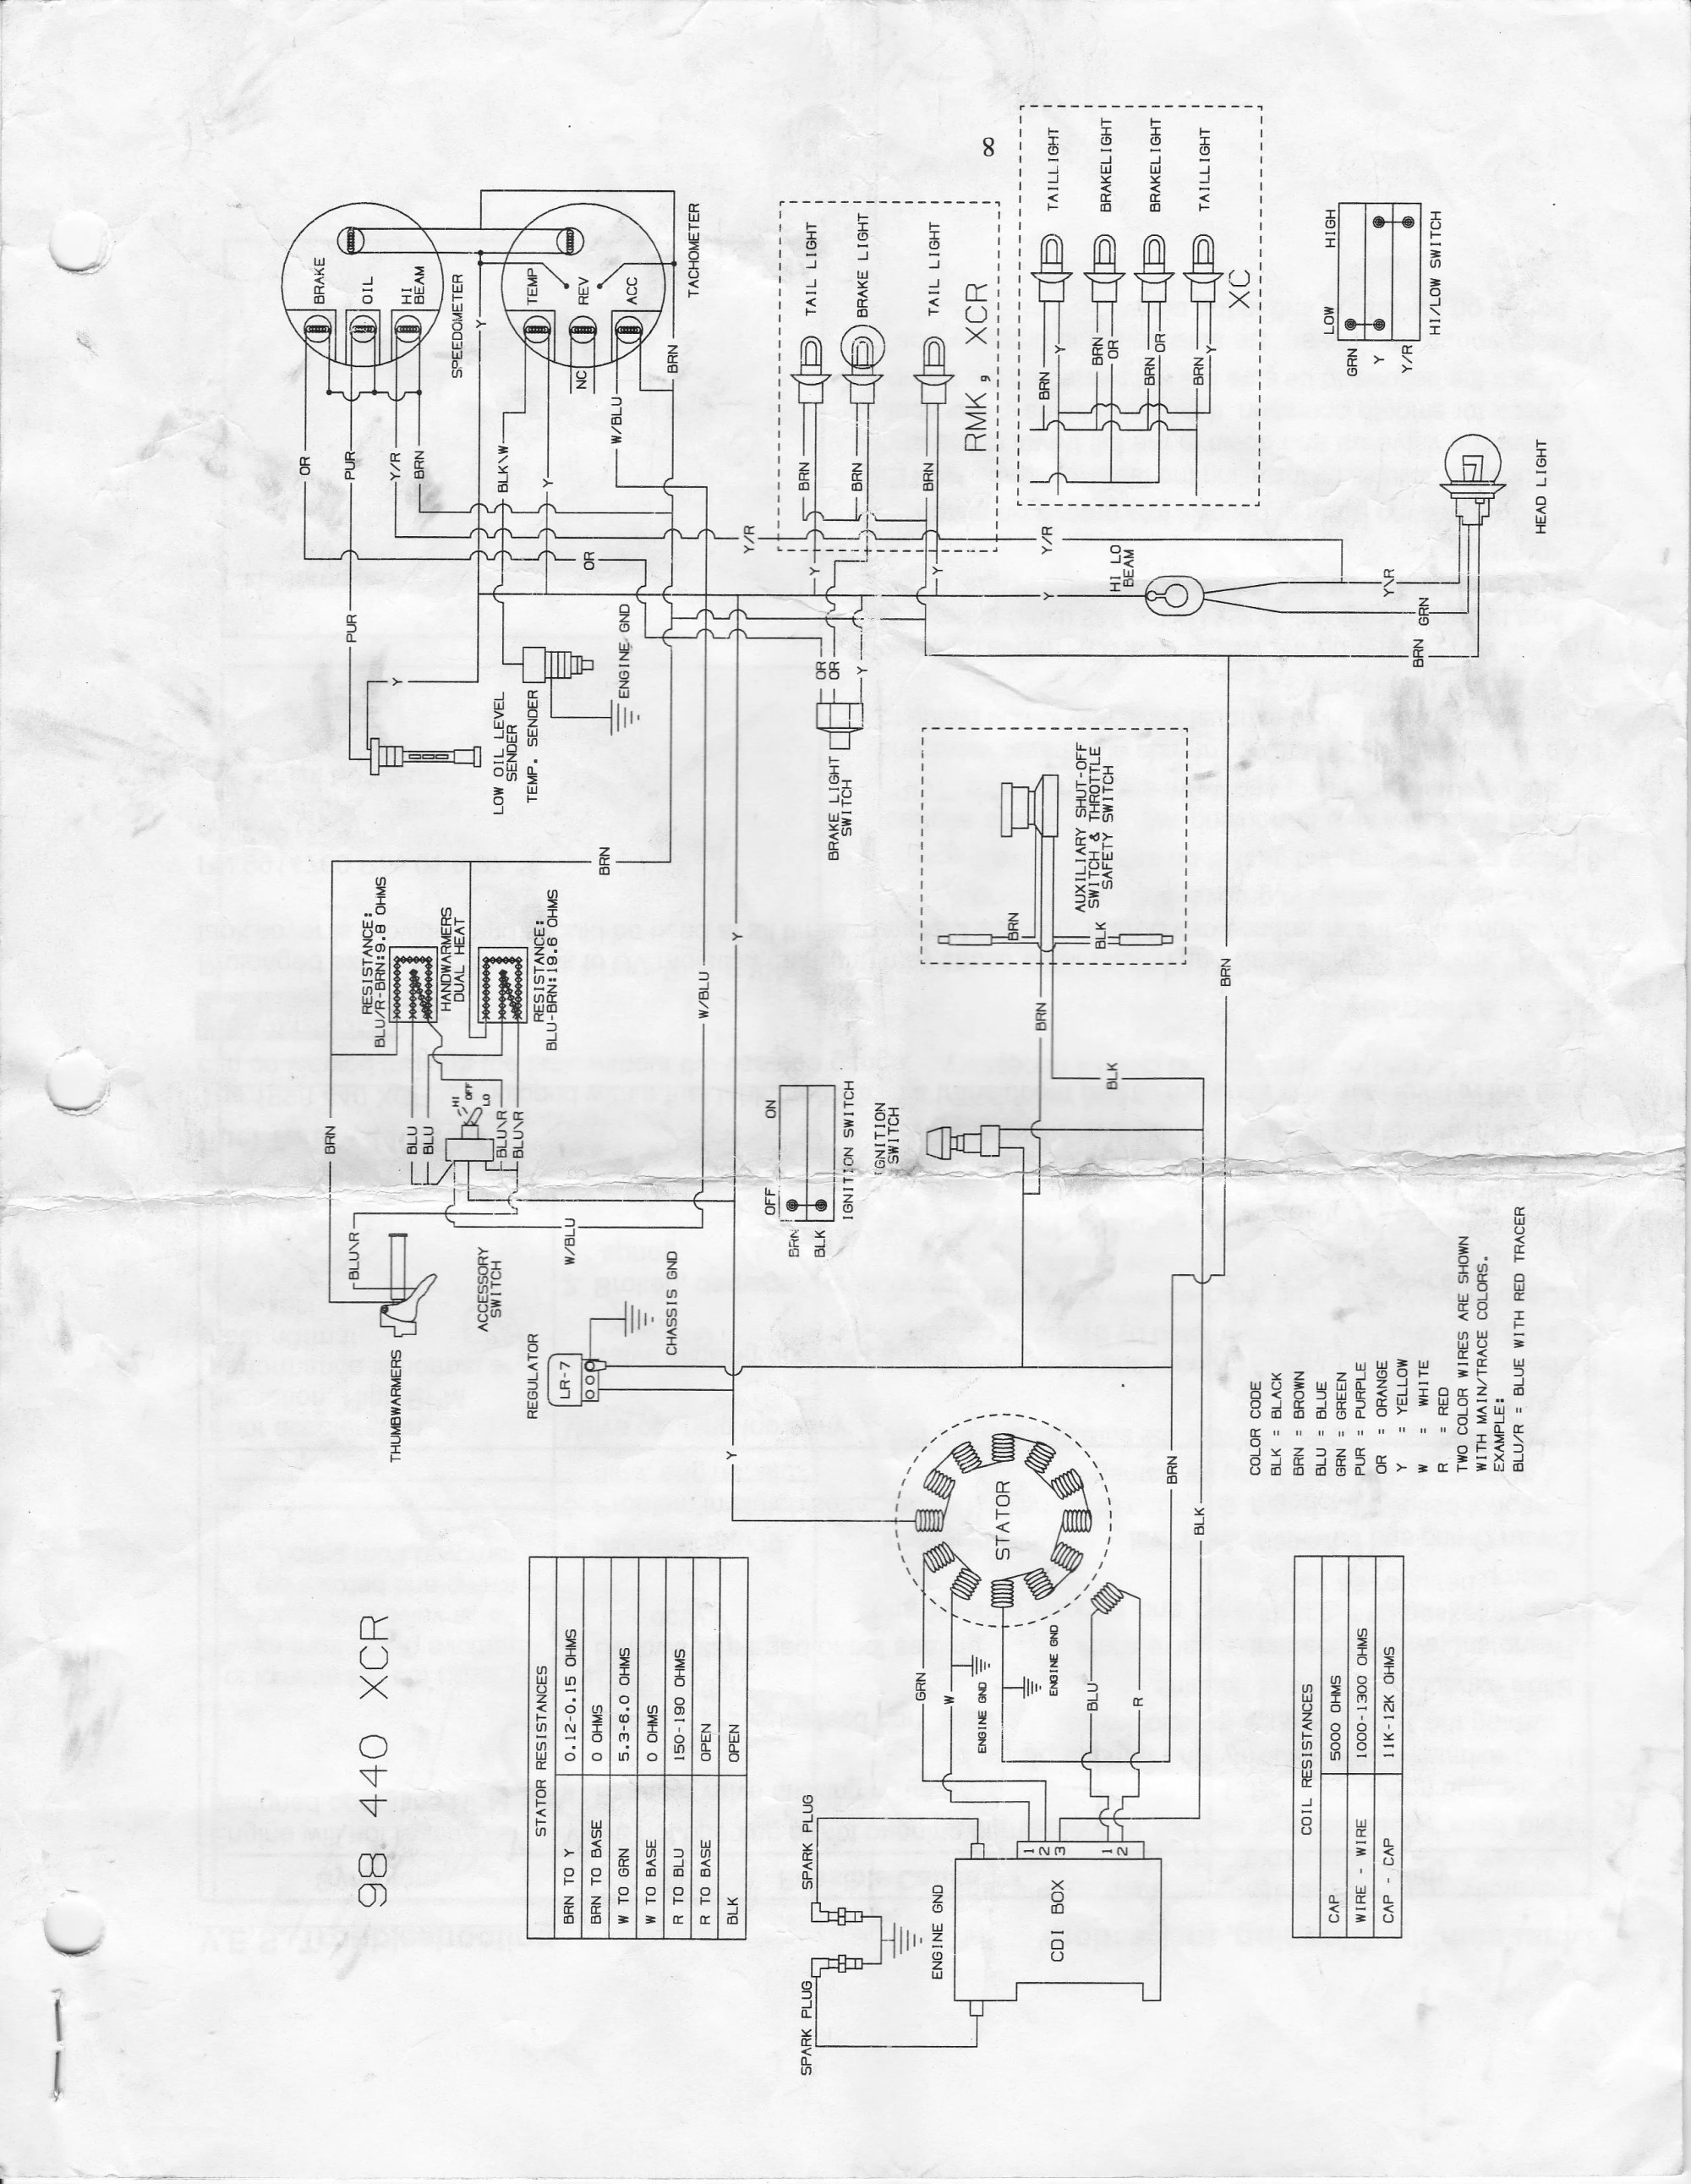 hight resolution of 2003 polaris trail boss wiring harness wiring diagram schematic diagram of polaris atv parts 1989 w897527 trail boss 2x4 wiring